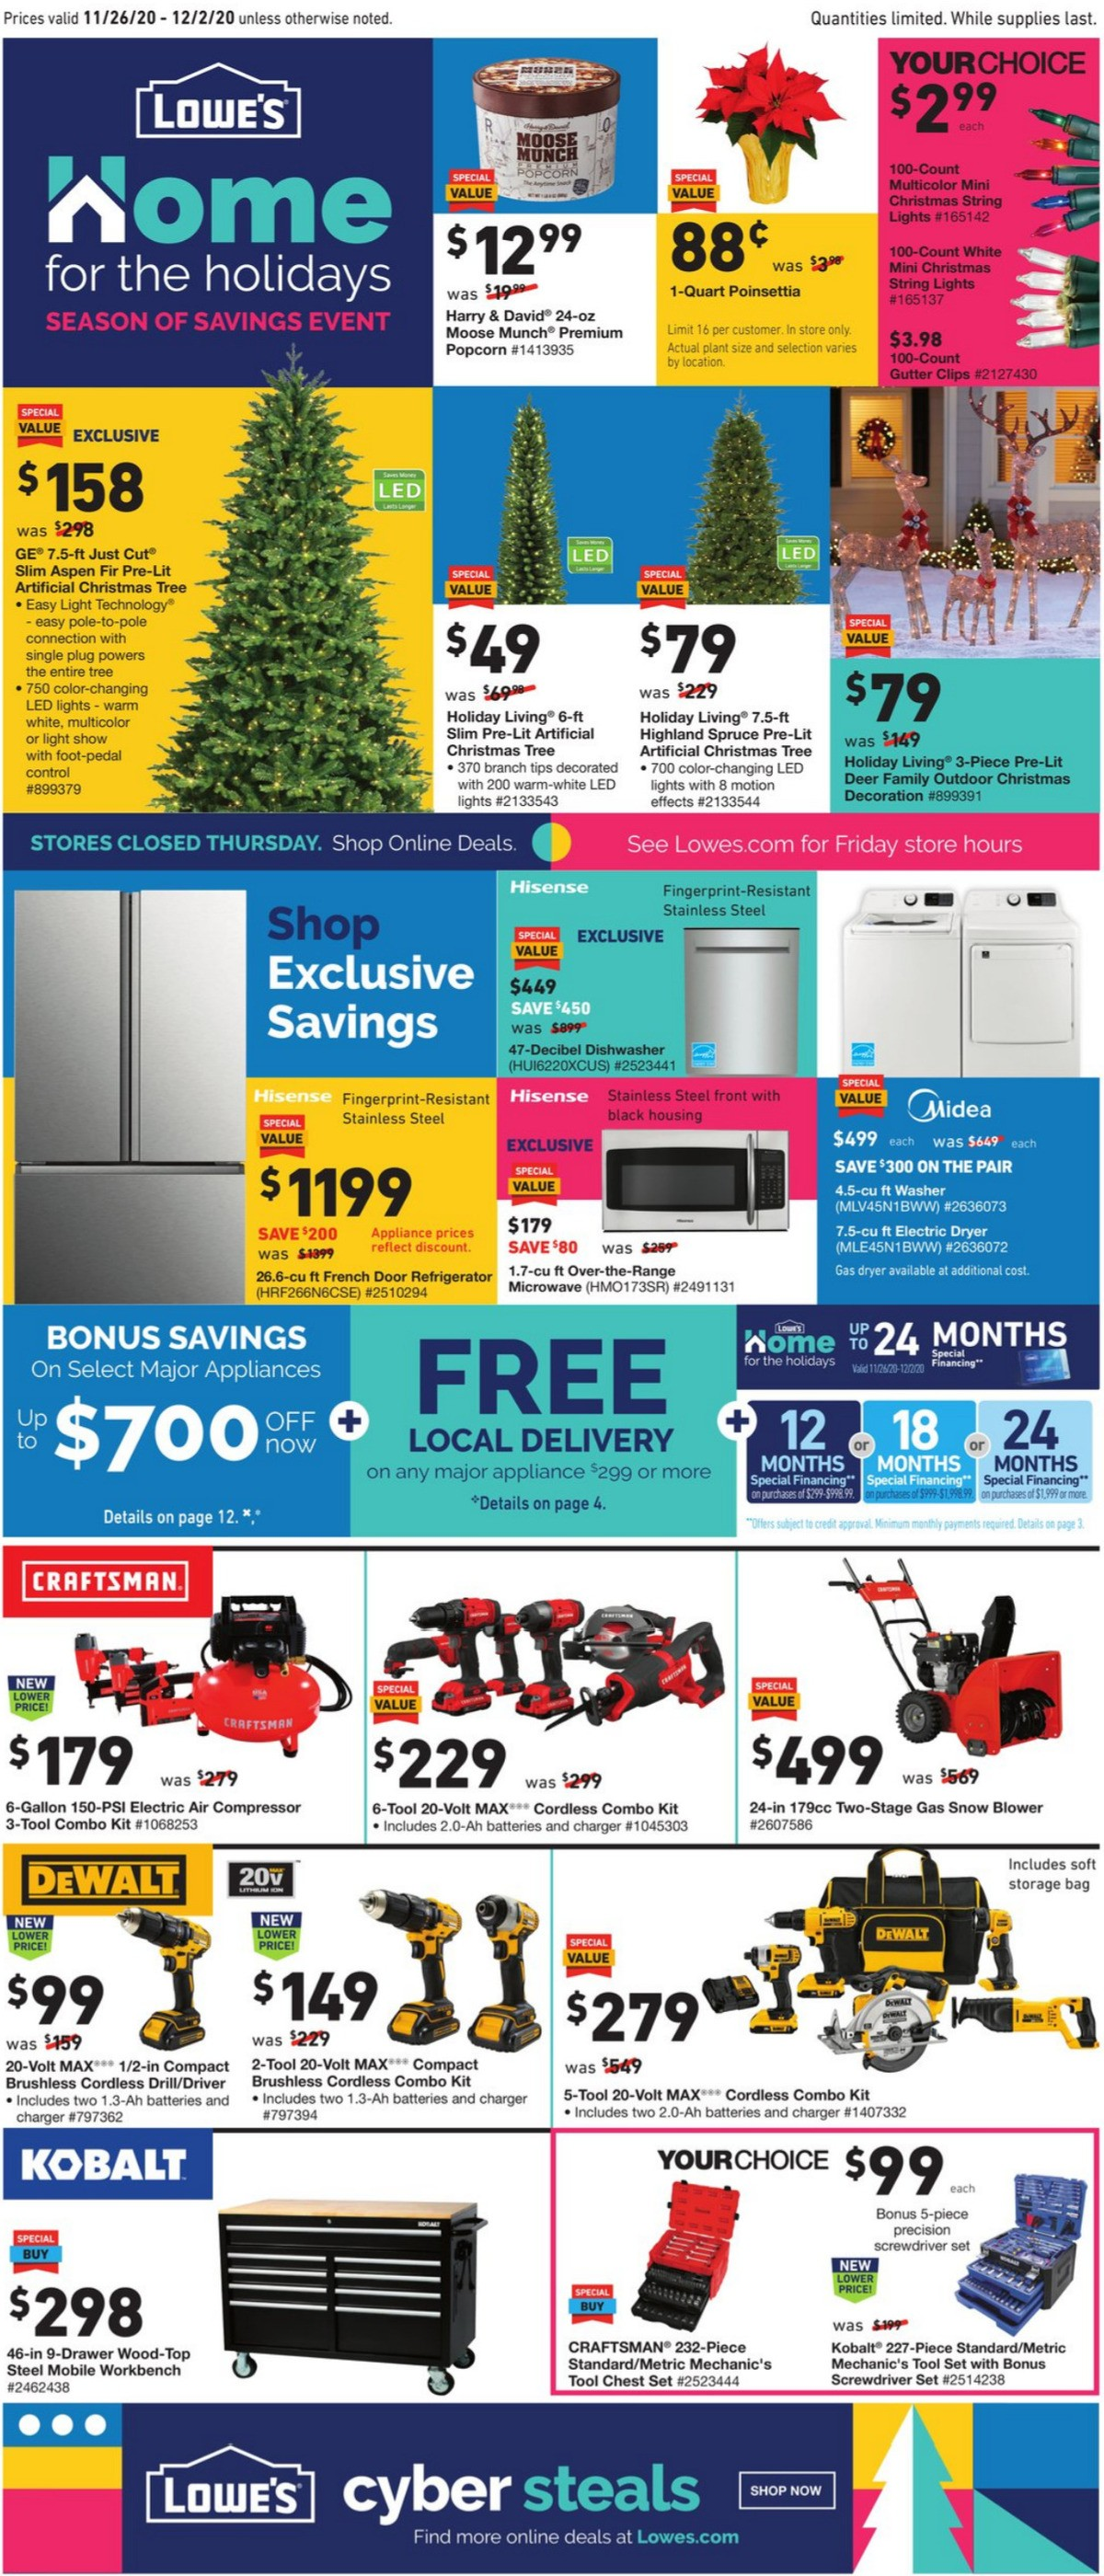 Lowe's Seasons of Savings Extended Event Weekly Ad from November 26